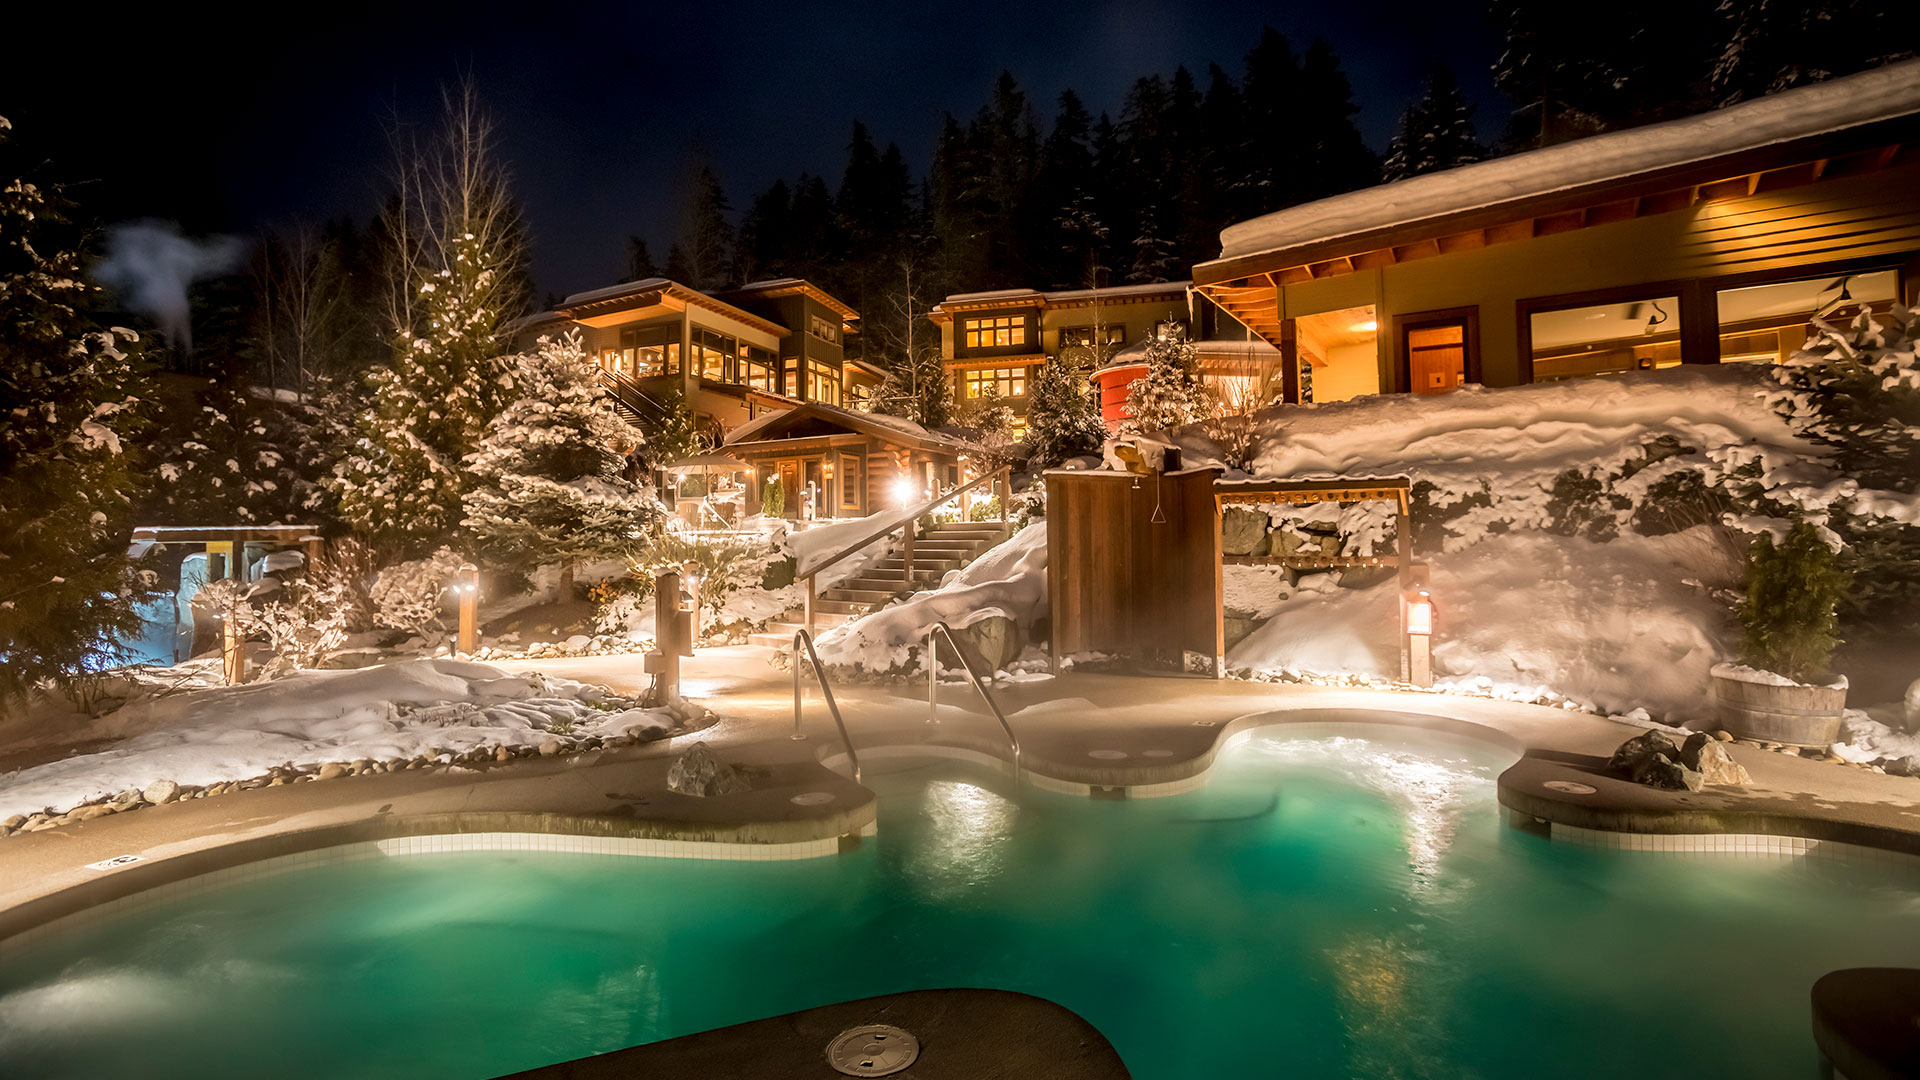 whistler spa site at night